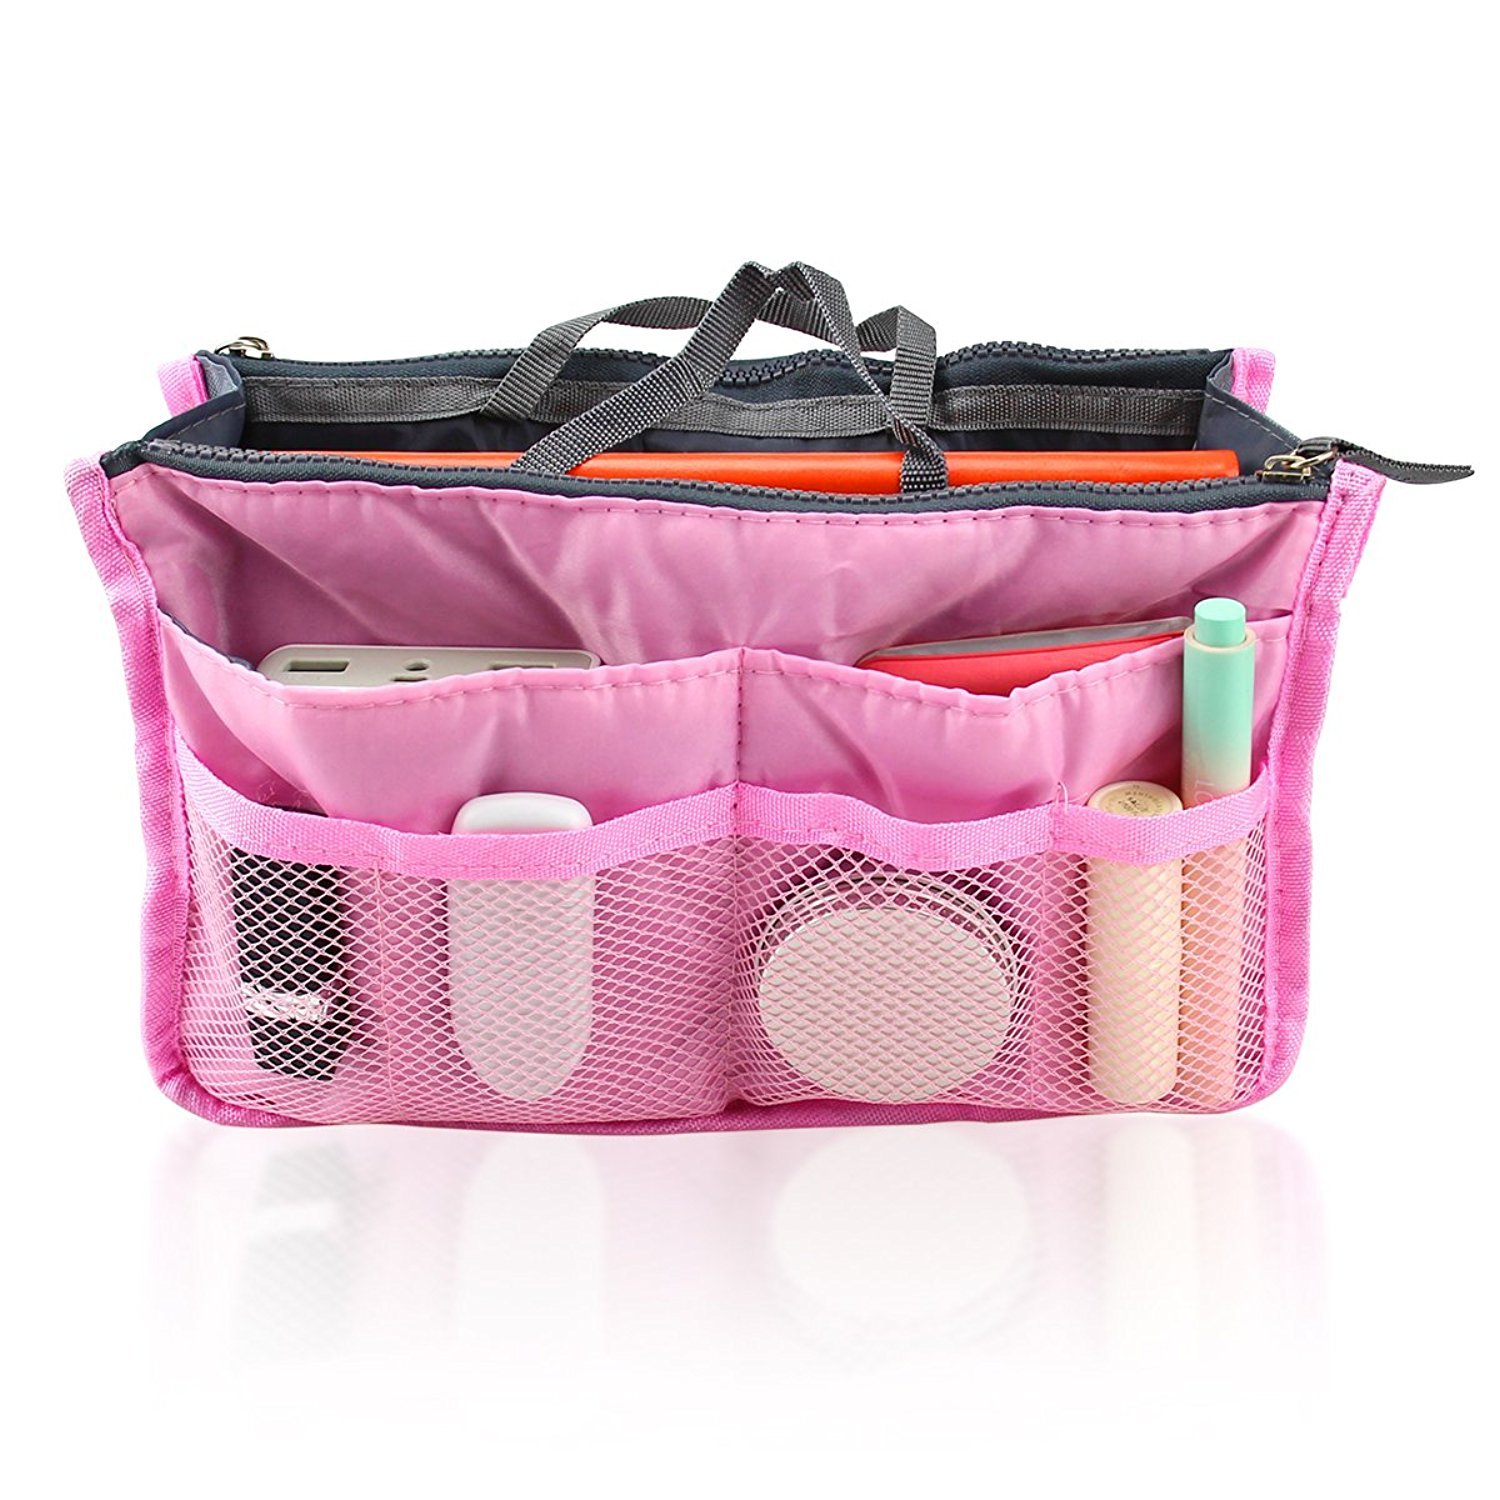 DierCosy Pink Women Travel Insert Handbag Organiser Purse Large Liner Organizer Tidy Bag DCpro00222